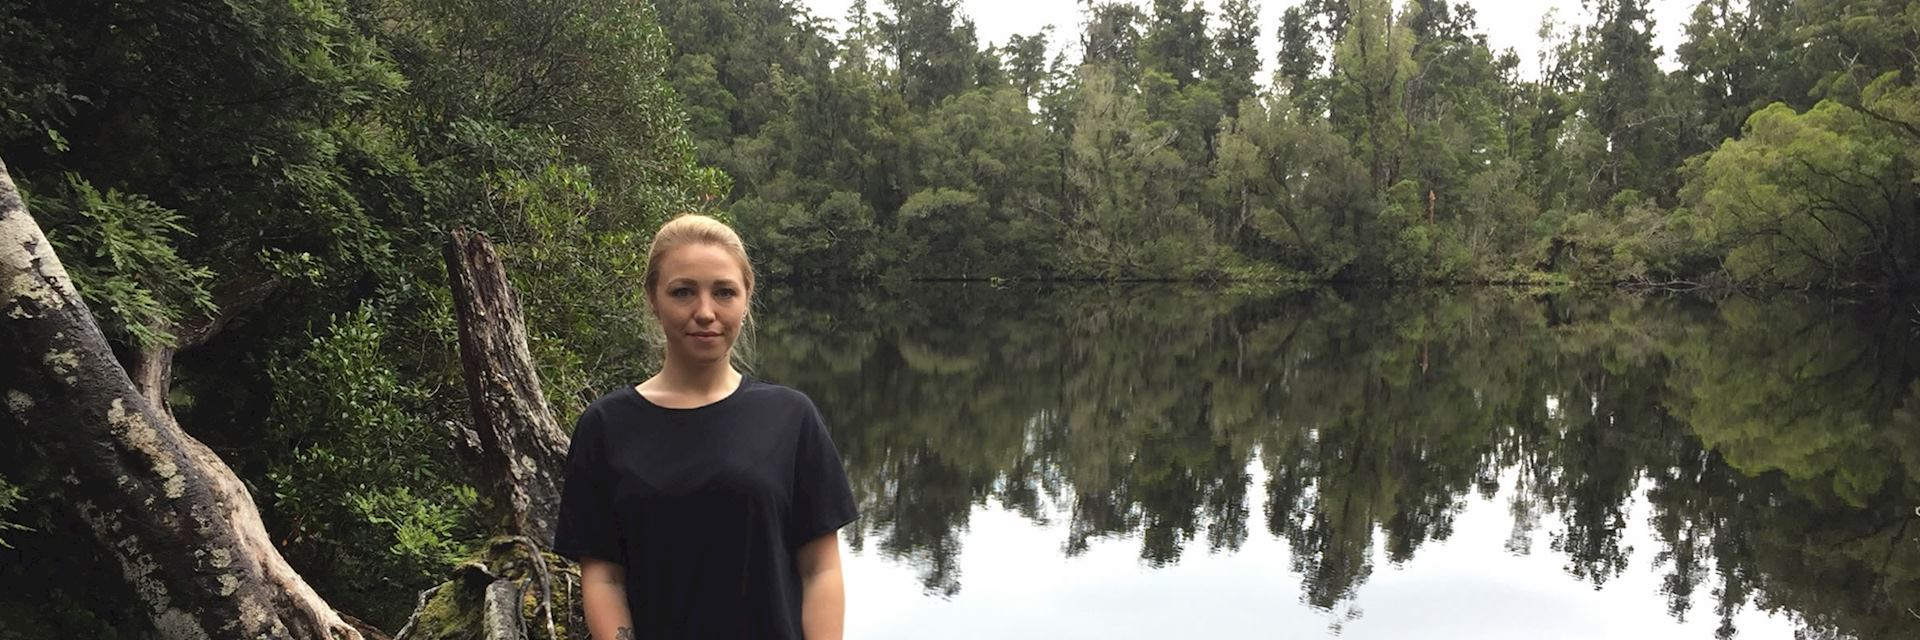 Catrin next to Lake Wombat, Franz Josef, New Zealand